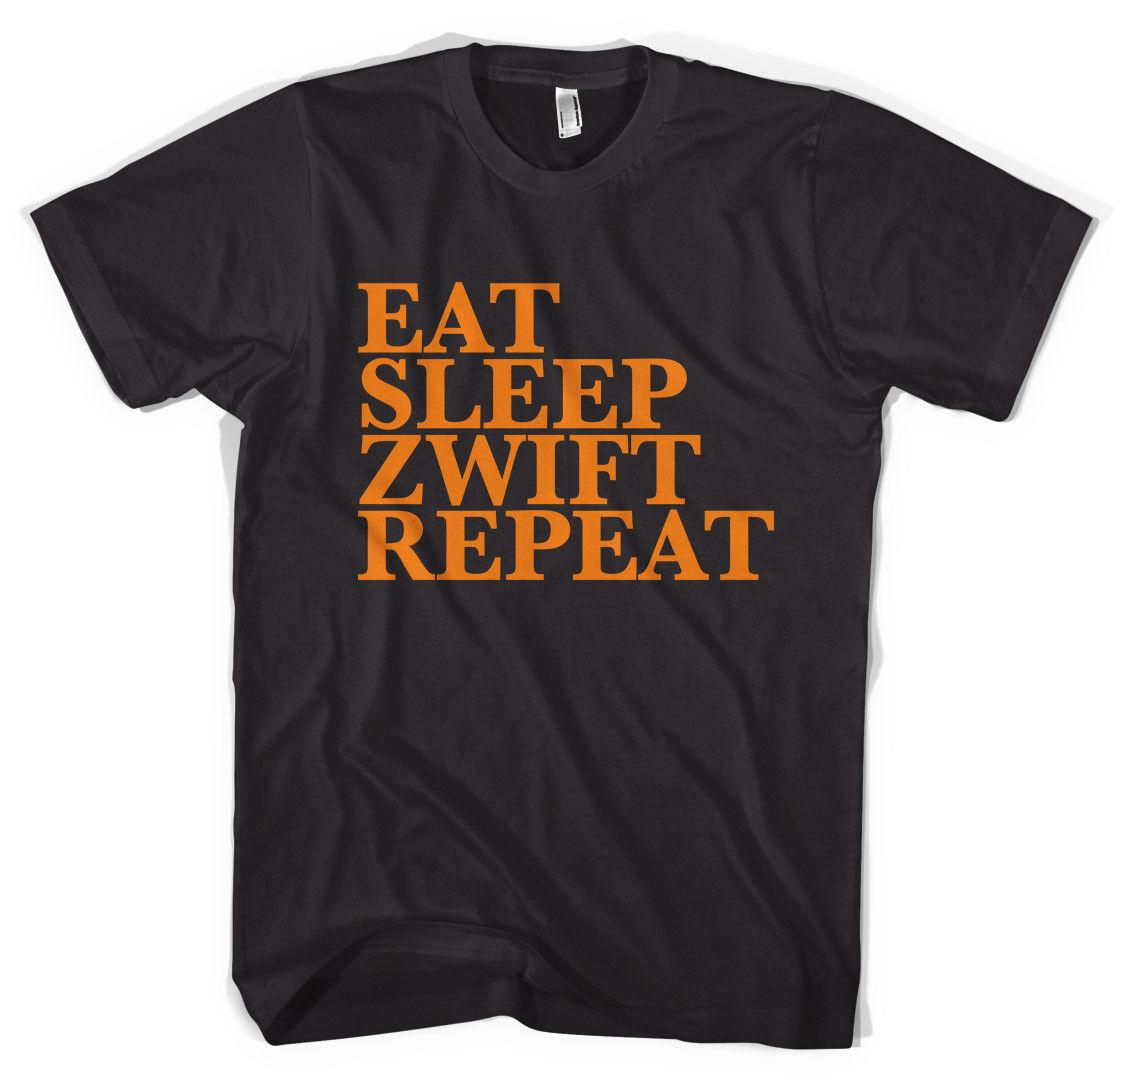 Eat Sleep Zwift Repeat Cycling Strava Unisex T-Shirt All Sizes Funny free  shipping Unisex Casual